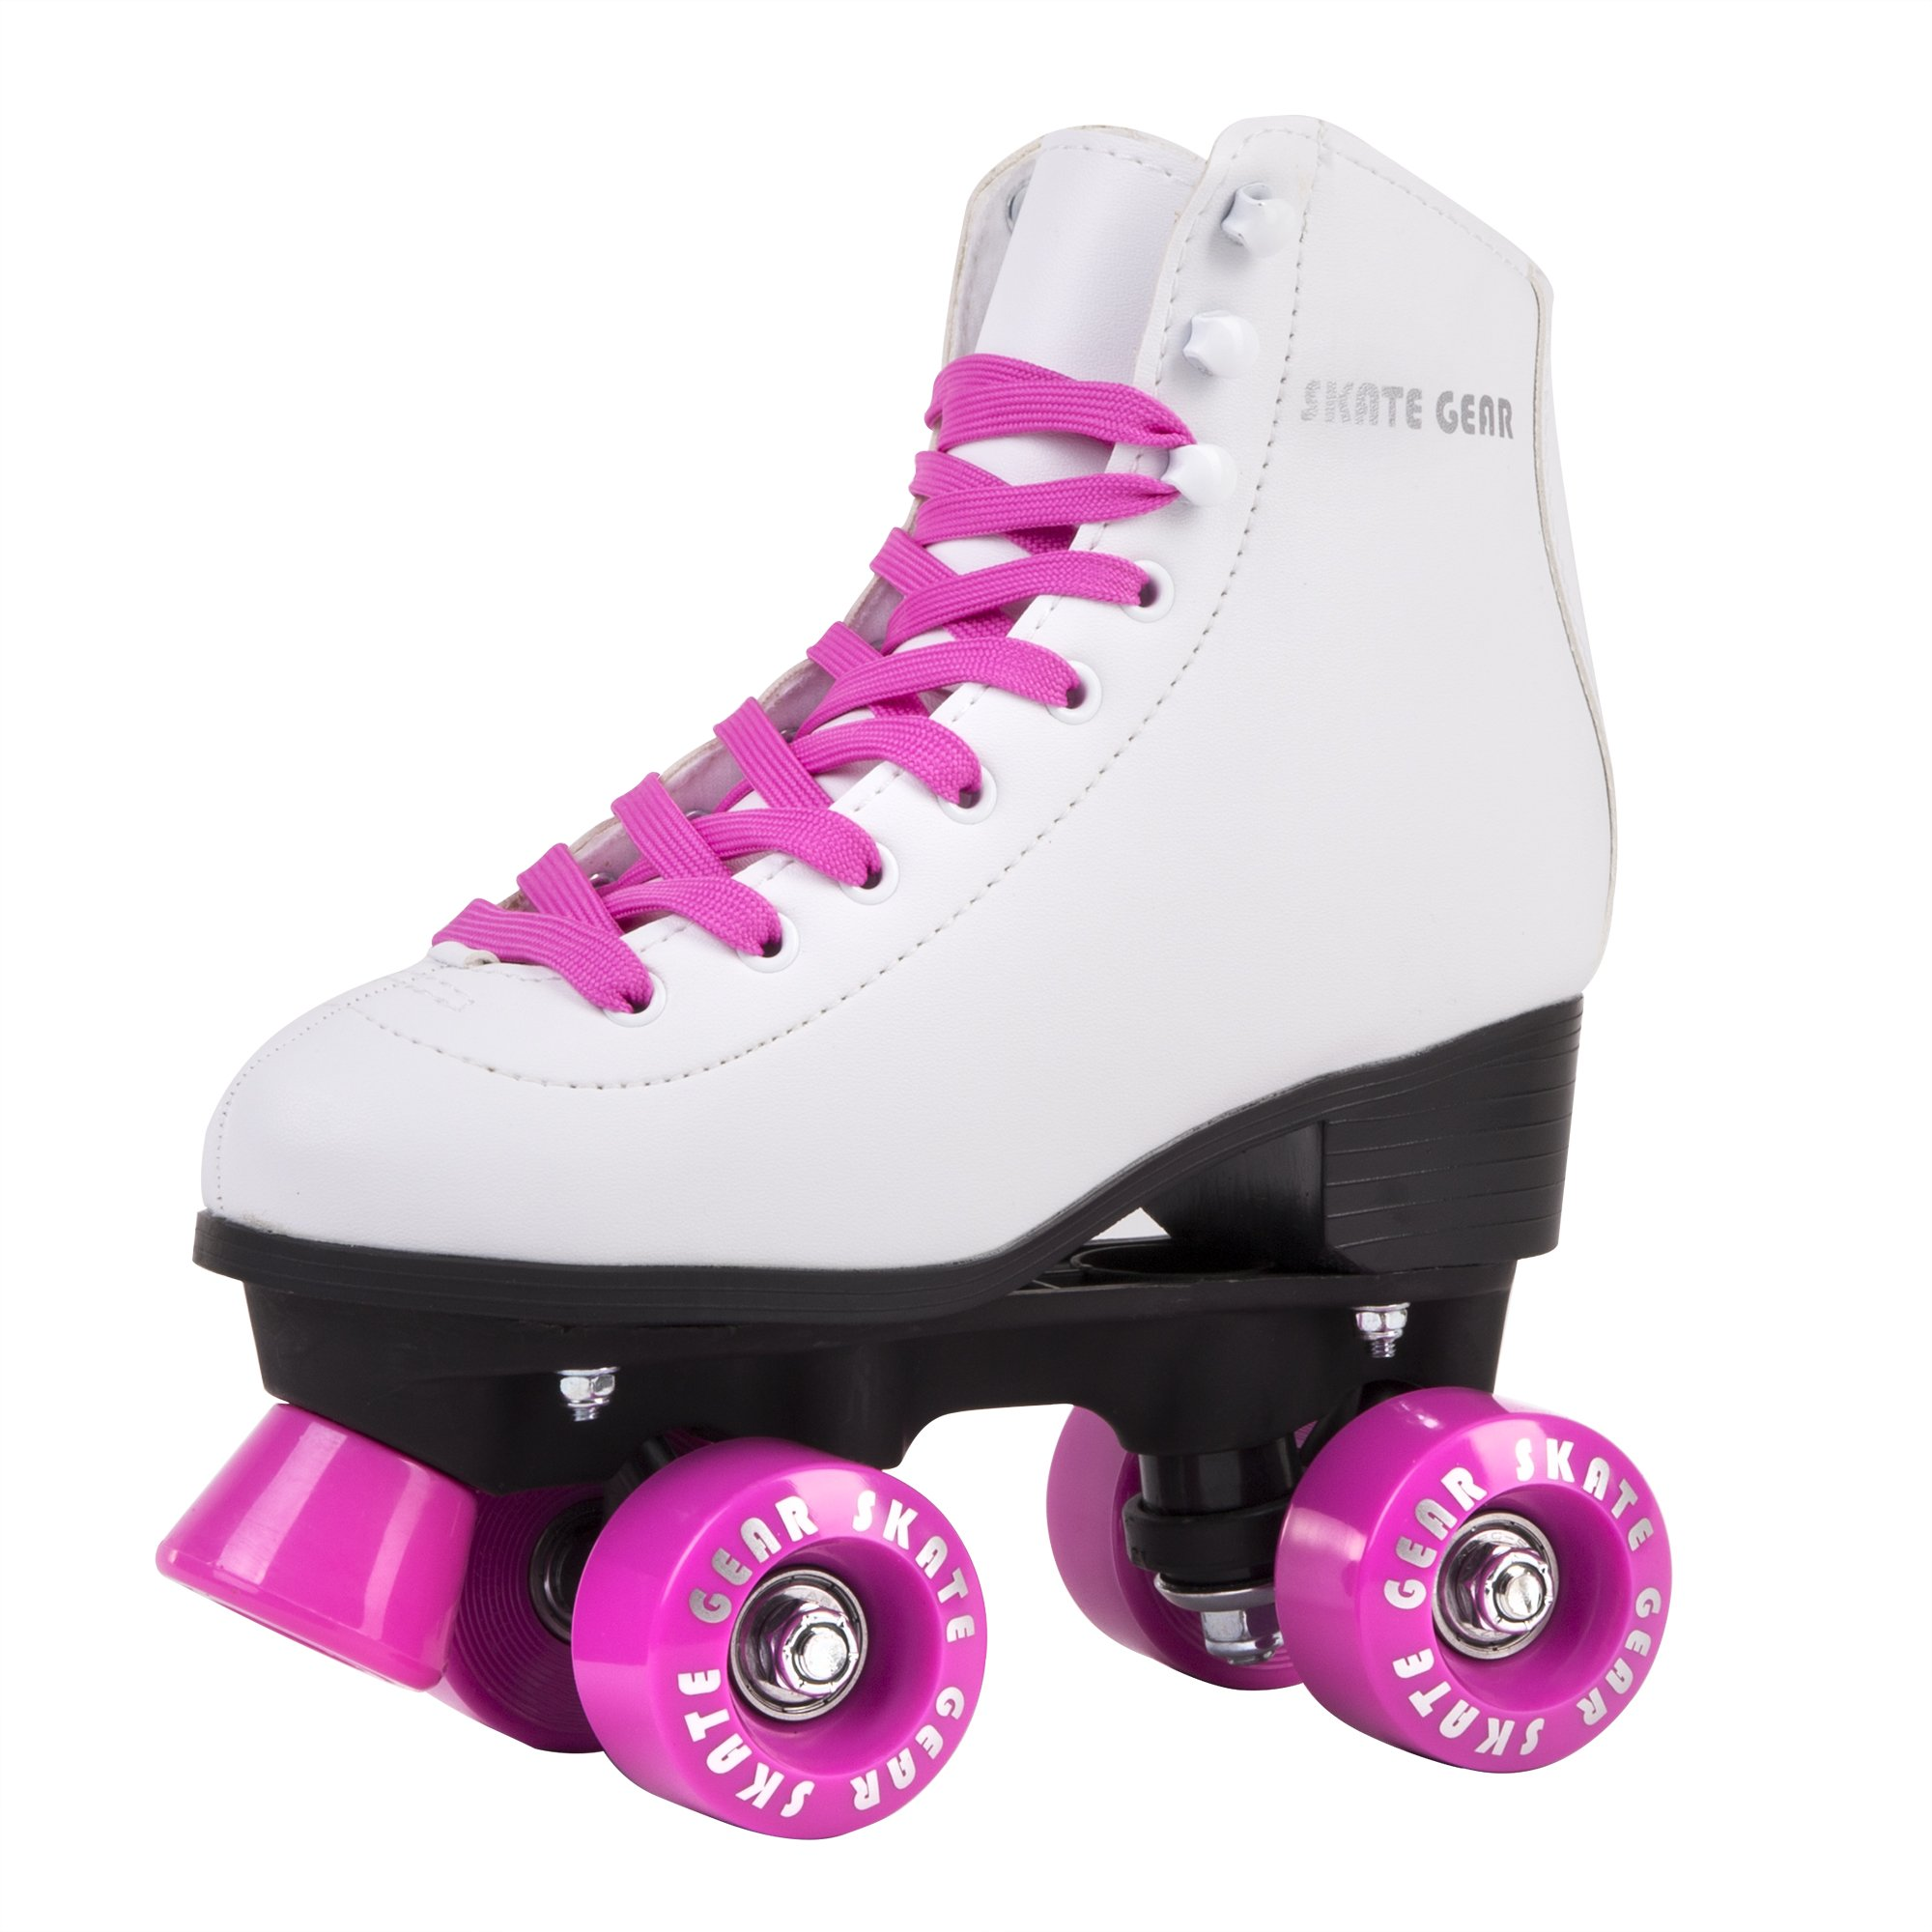 Cal 7 All-Purpose Indoor Outdoor Speedy Roller Skate for Youth and Adults (Pink, Men's 7/Women's 8)